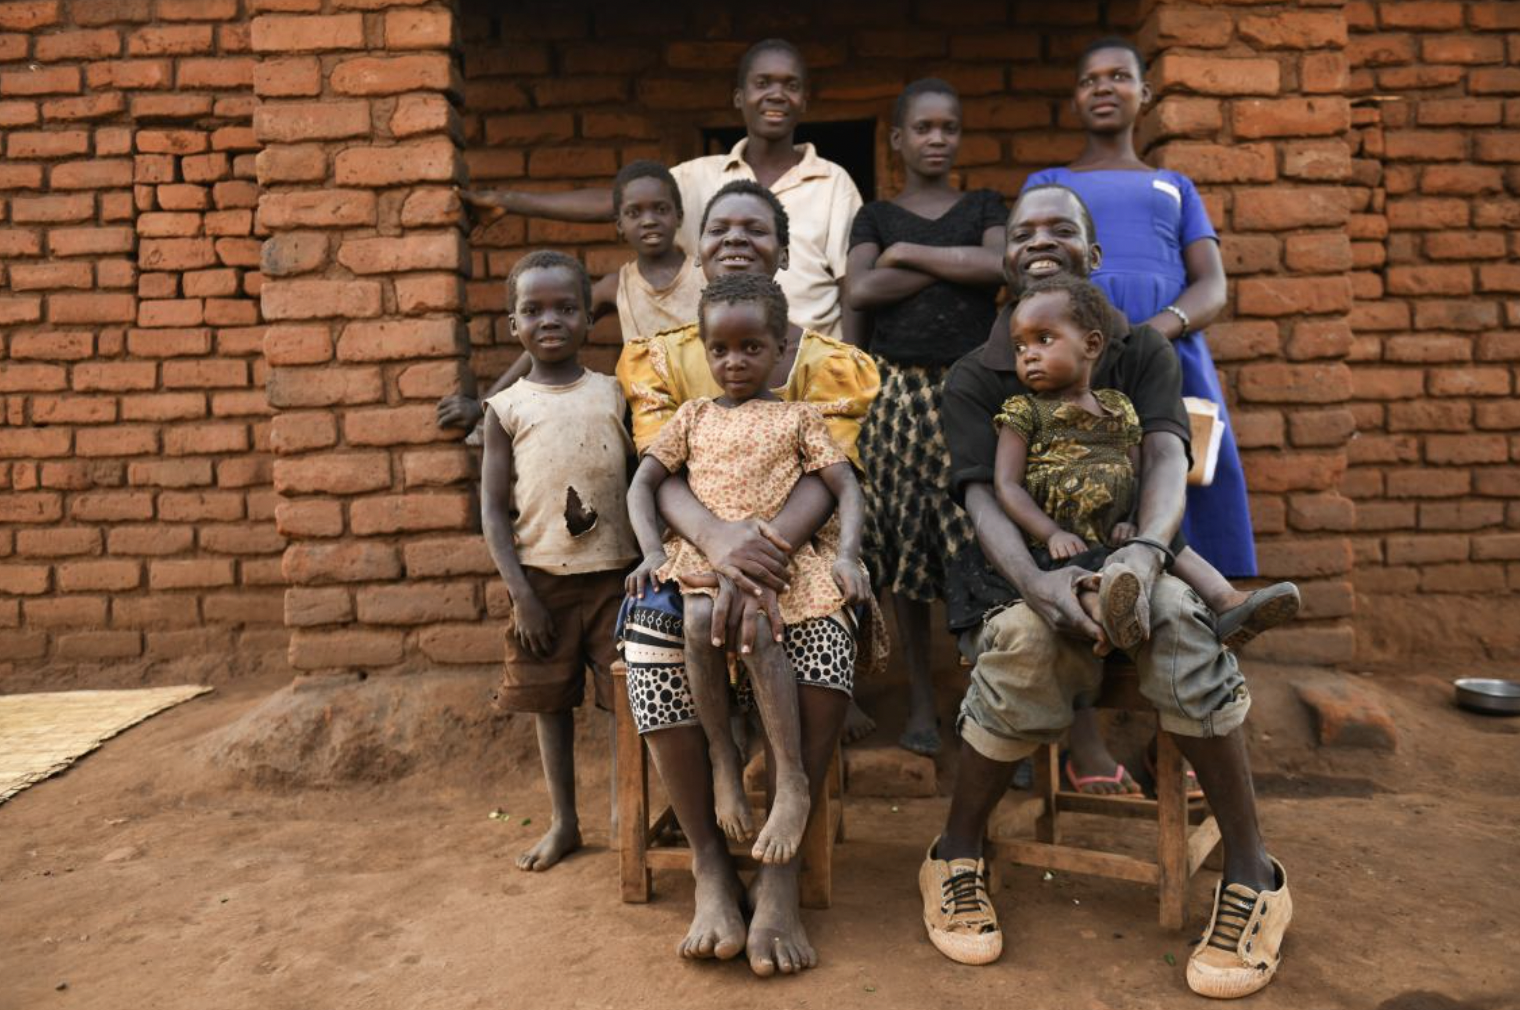 UNICEF Malawi/2020/Thoko Chikondi Sophie and her family outside their home in Balaka